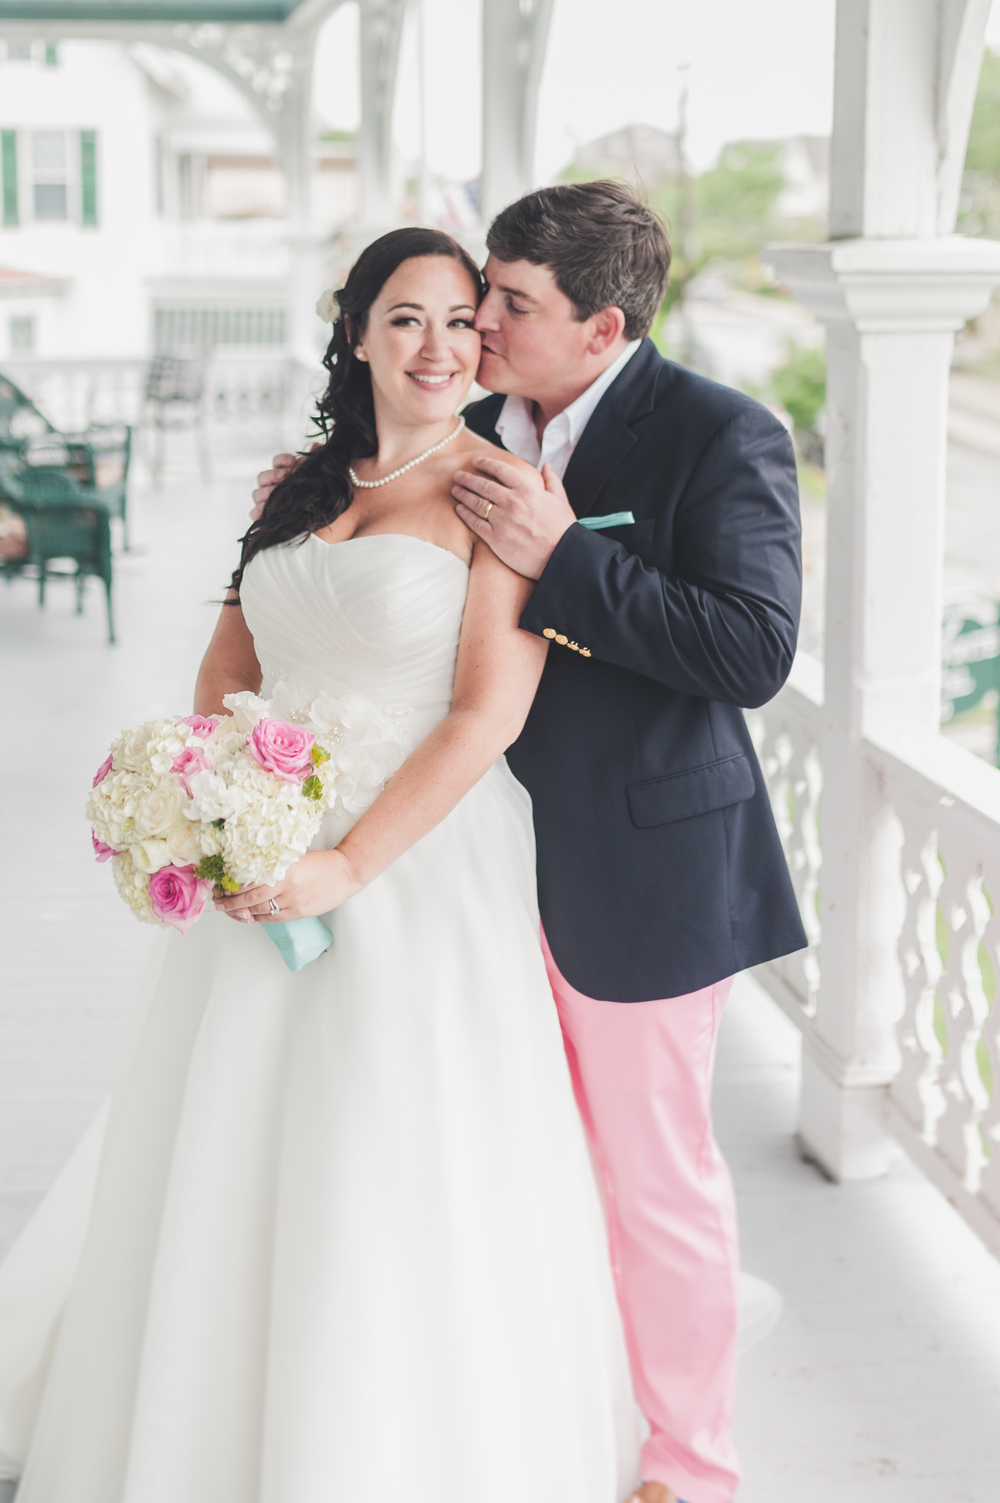 Finally Married - Chalfonte Hotel Wedding Cape May, NJ